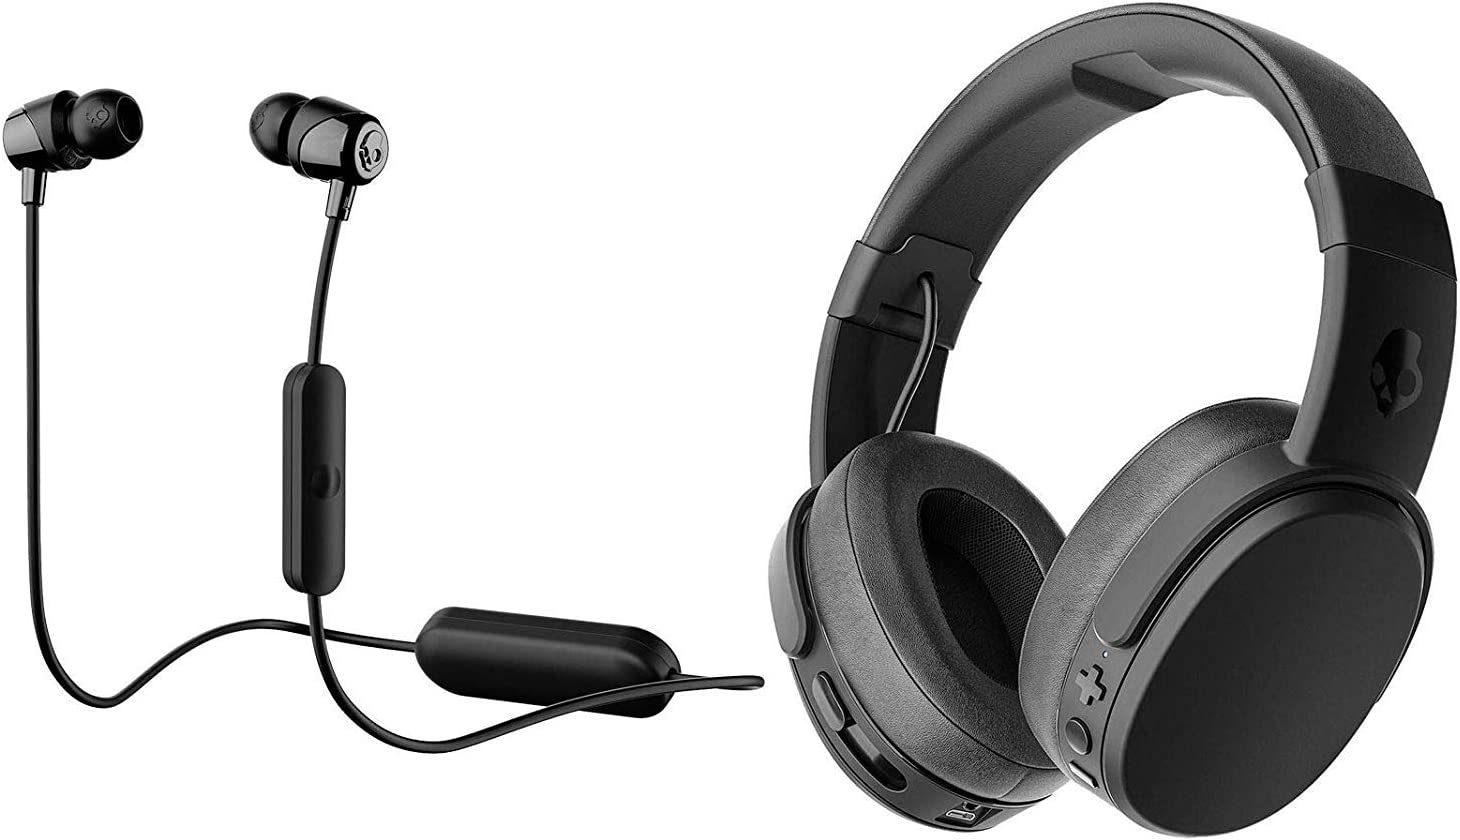 Skullcandy Crusher Foldable Noise Isolating Over-Ear Wireless Bluetooth Immersive Headphone Bundle with Skullcandy Jib Bluetooth Wireless in Ear Earbuds - Black, Black